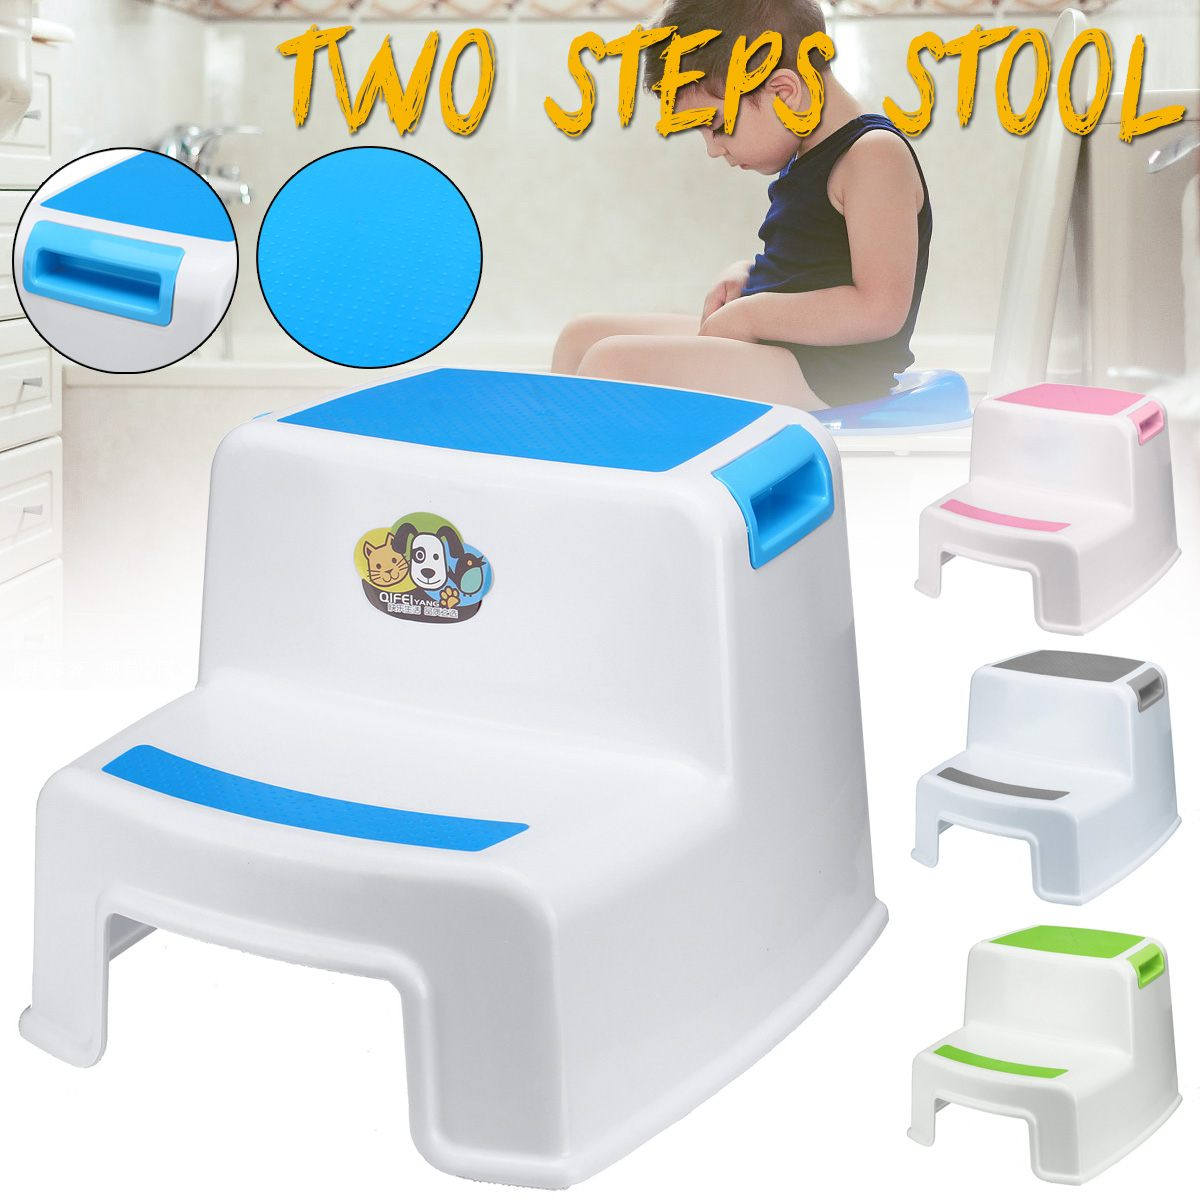 2 Steps Double Stool Plastic 280 lbs for Kids Anti-Slip Child Ladder New Children's Non-slip Feet Increase Bathroom Toilet Stool